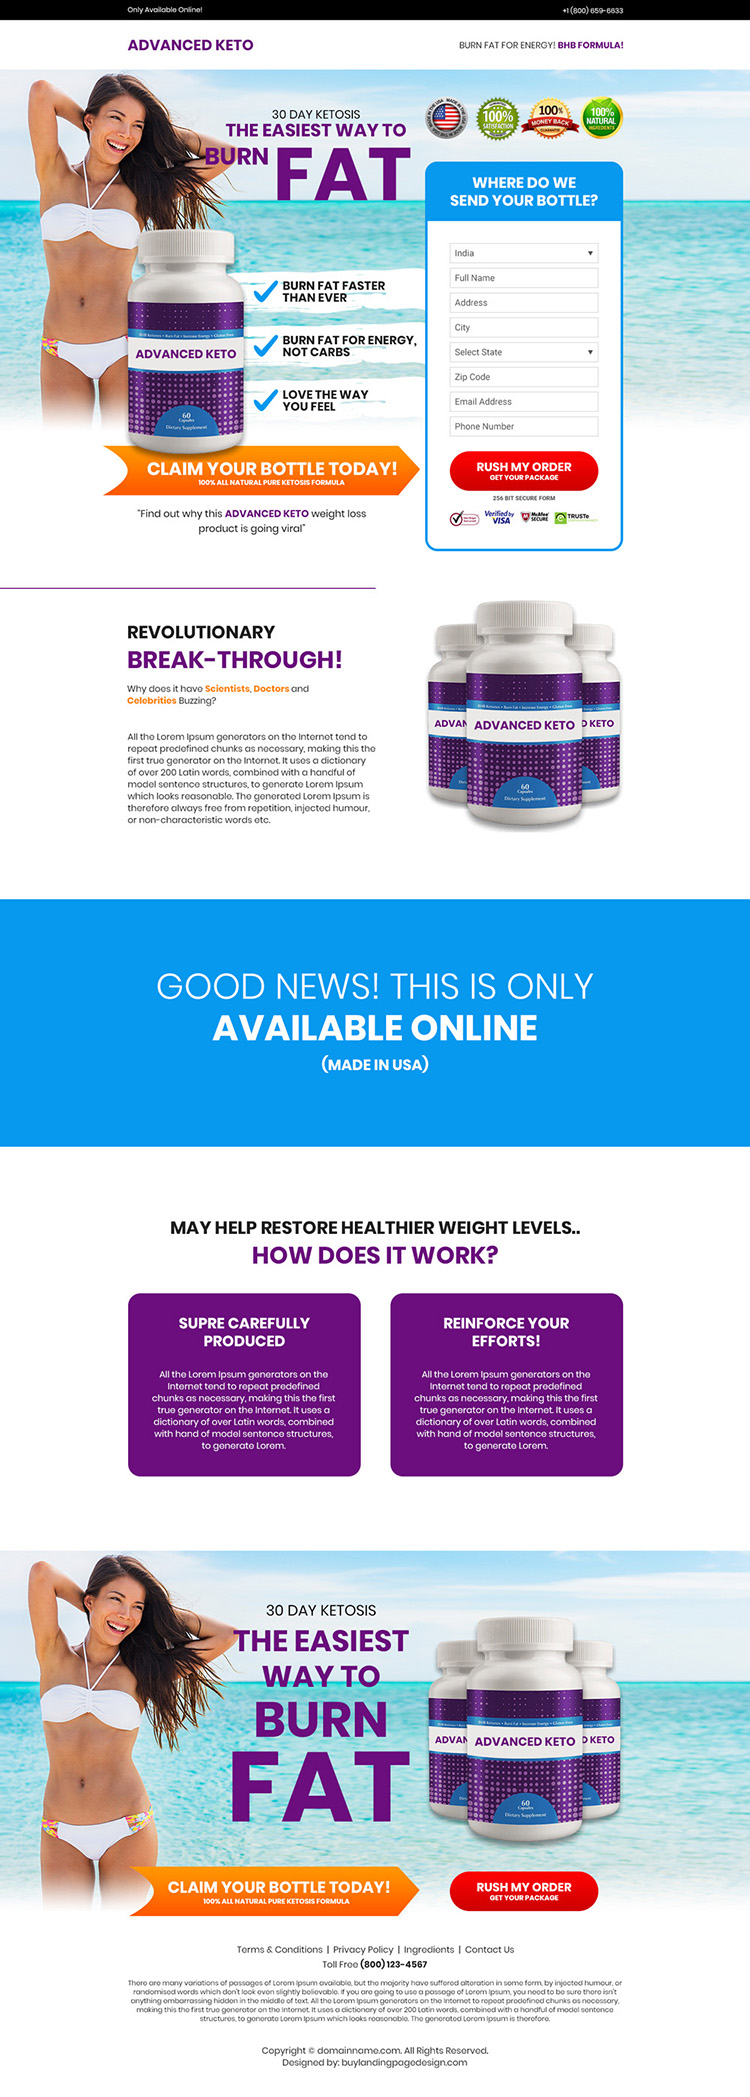 keto weight loss supplement selling bootstrap landing page design